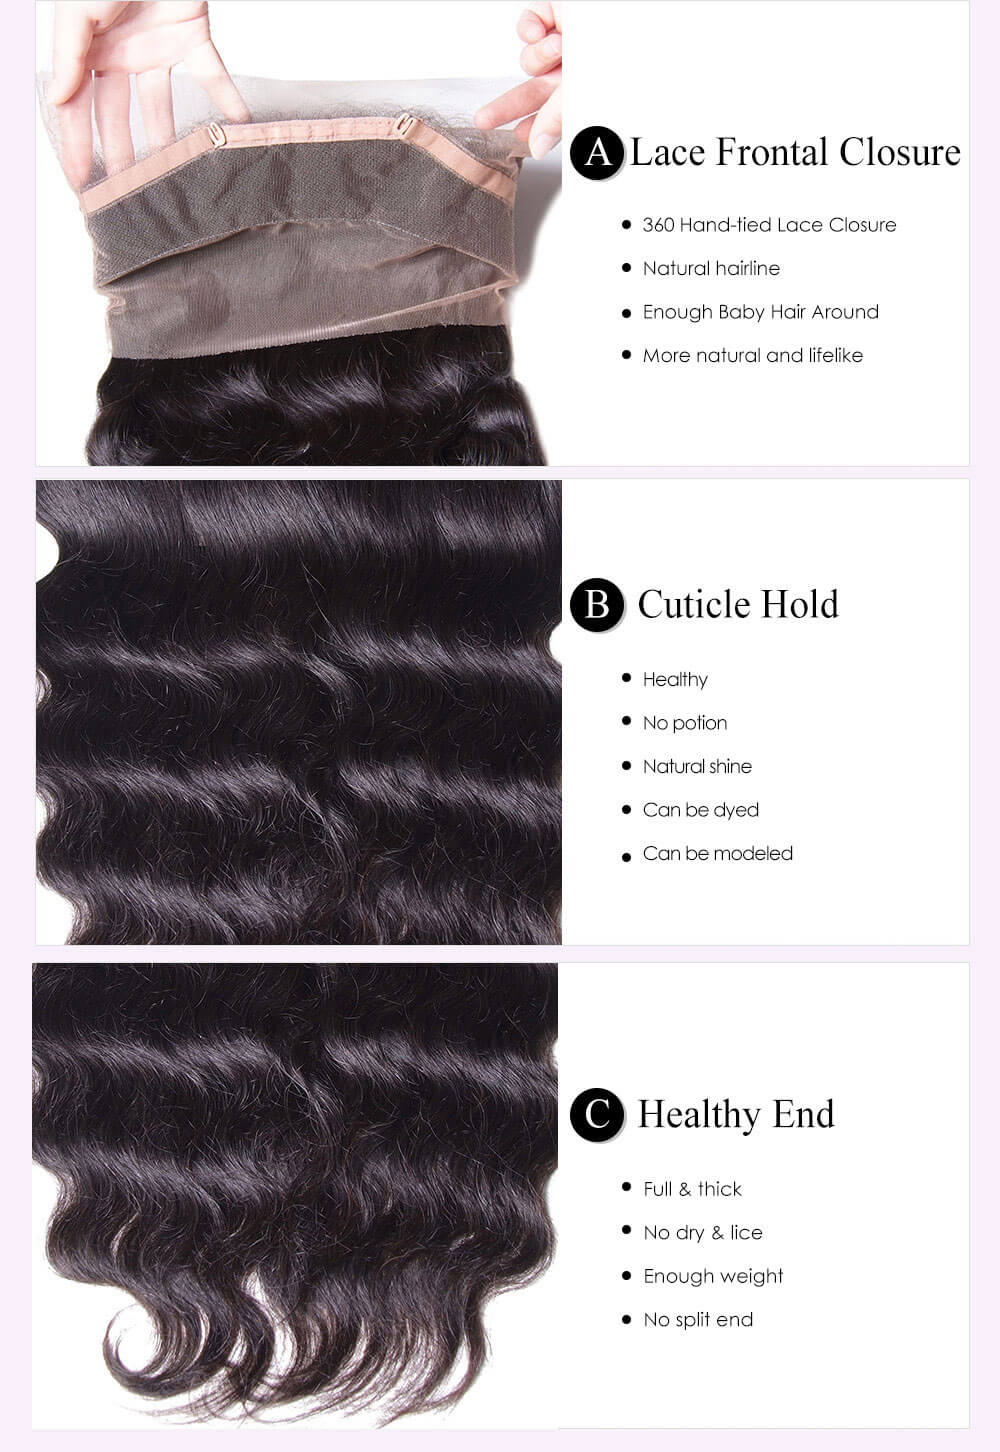 Unice kysiss body wave 3 bundles hair with  360 frontal